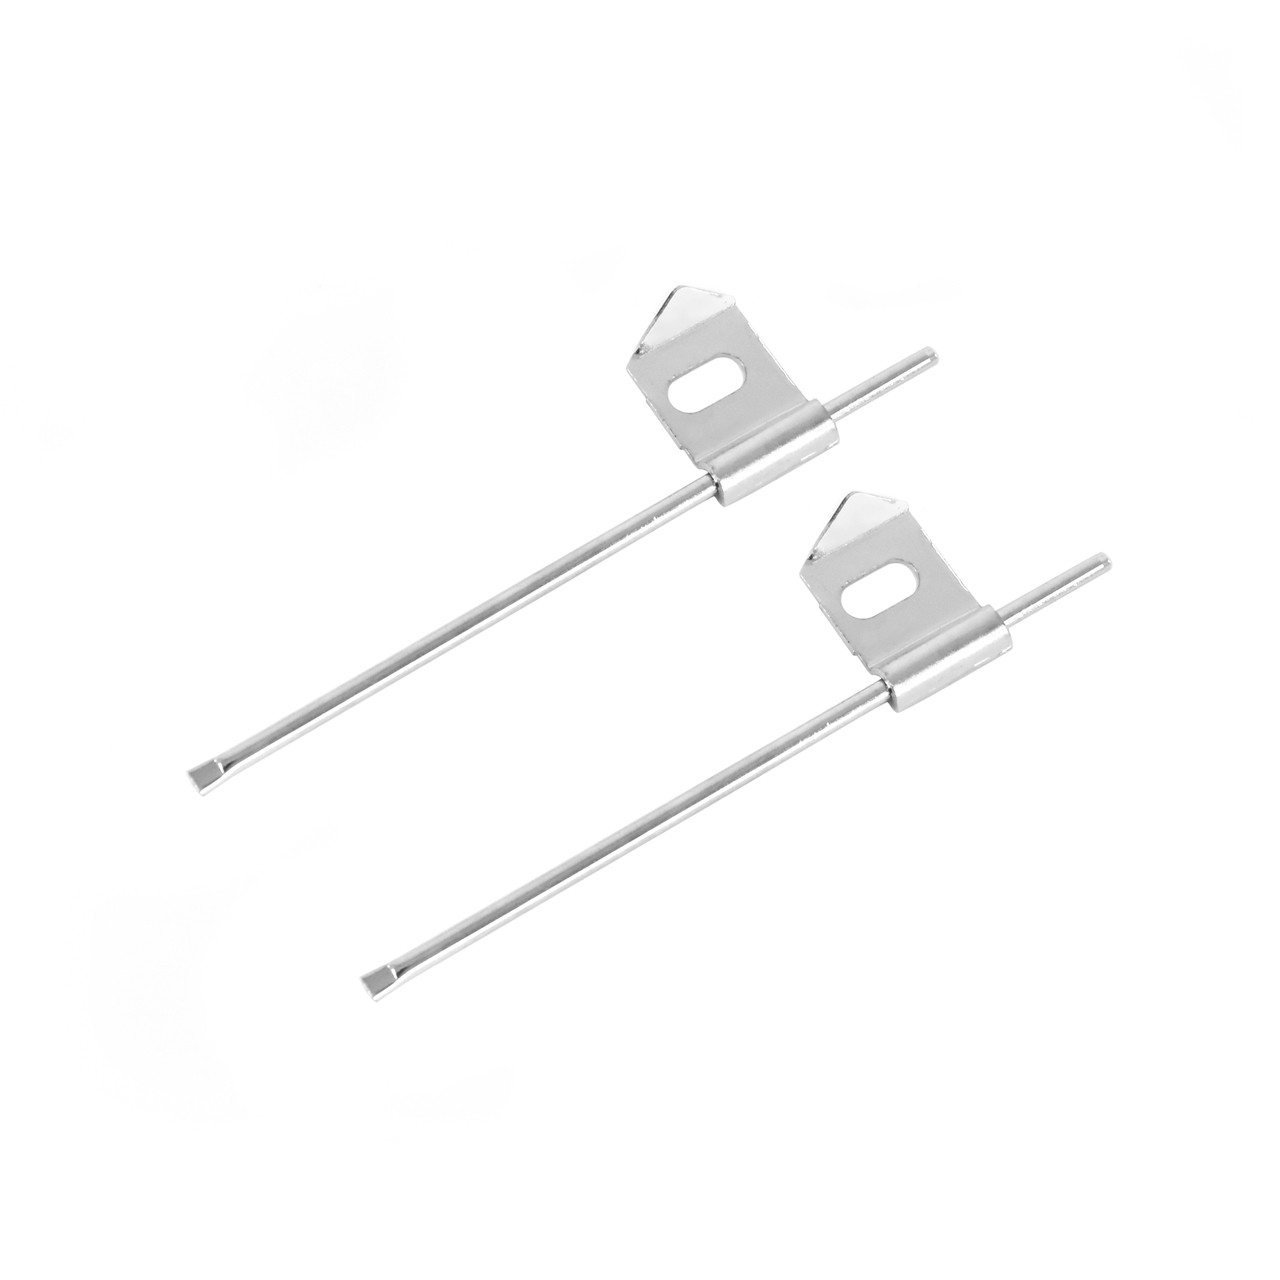 Windshield Washer Nozzle Pair [FM-EW004A]